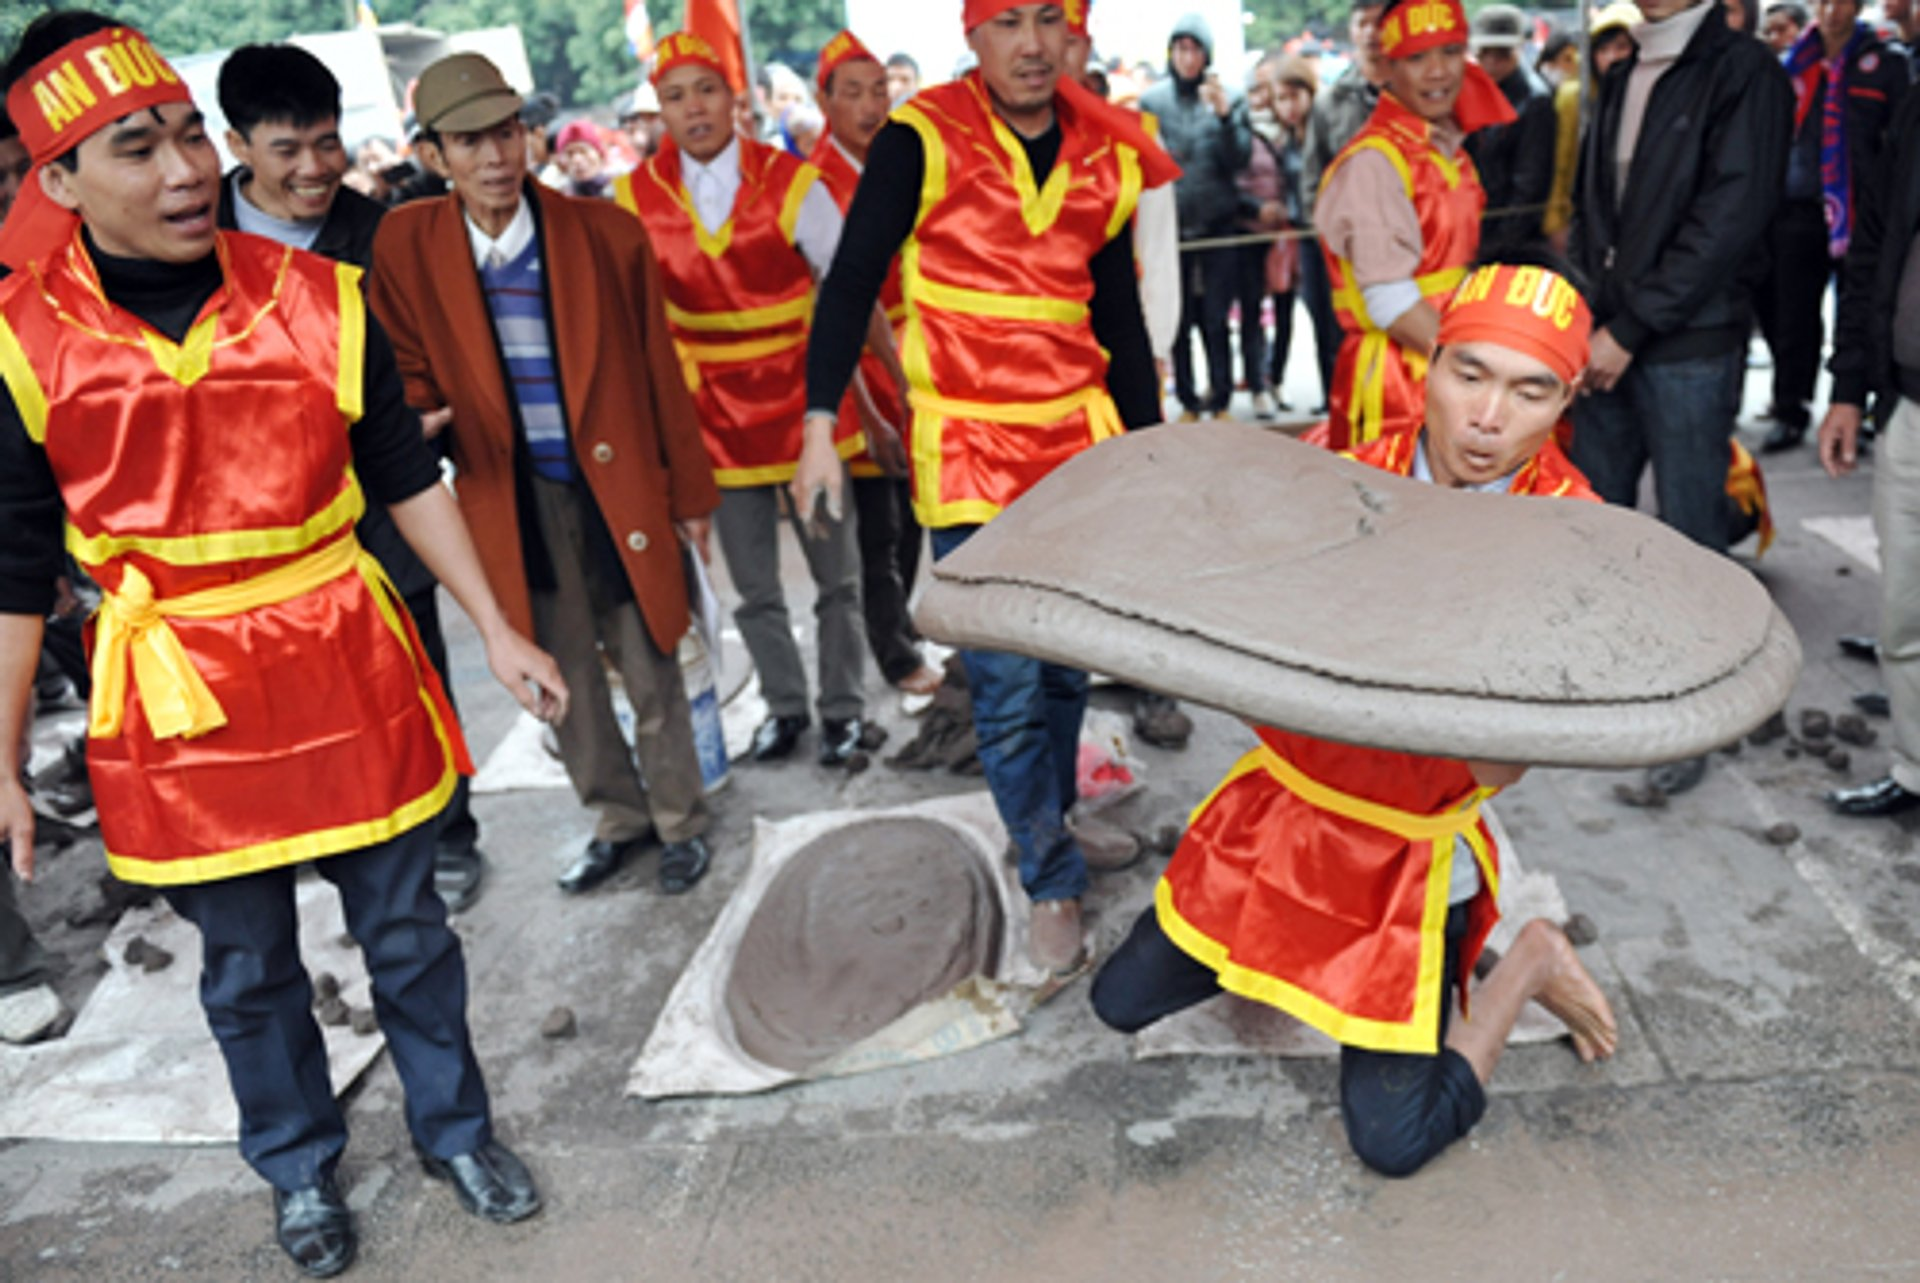 Clay Firecracker Festival in Vietnam 2019 - Best Time